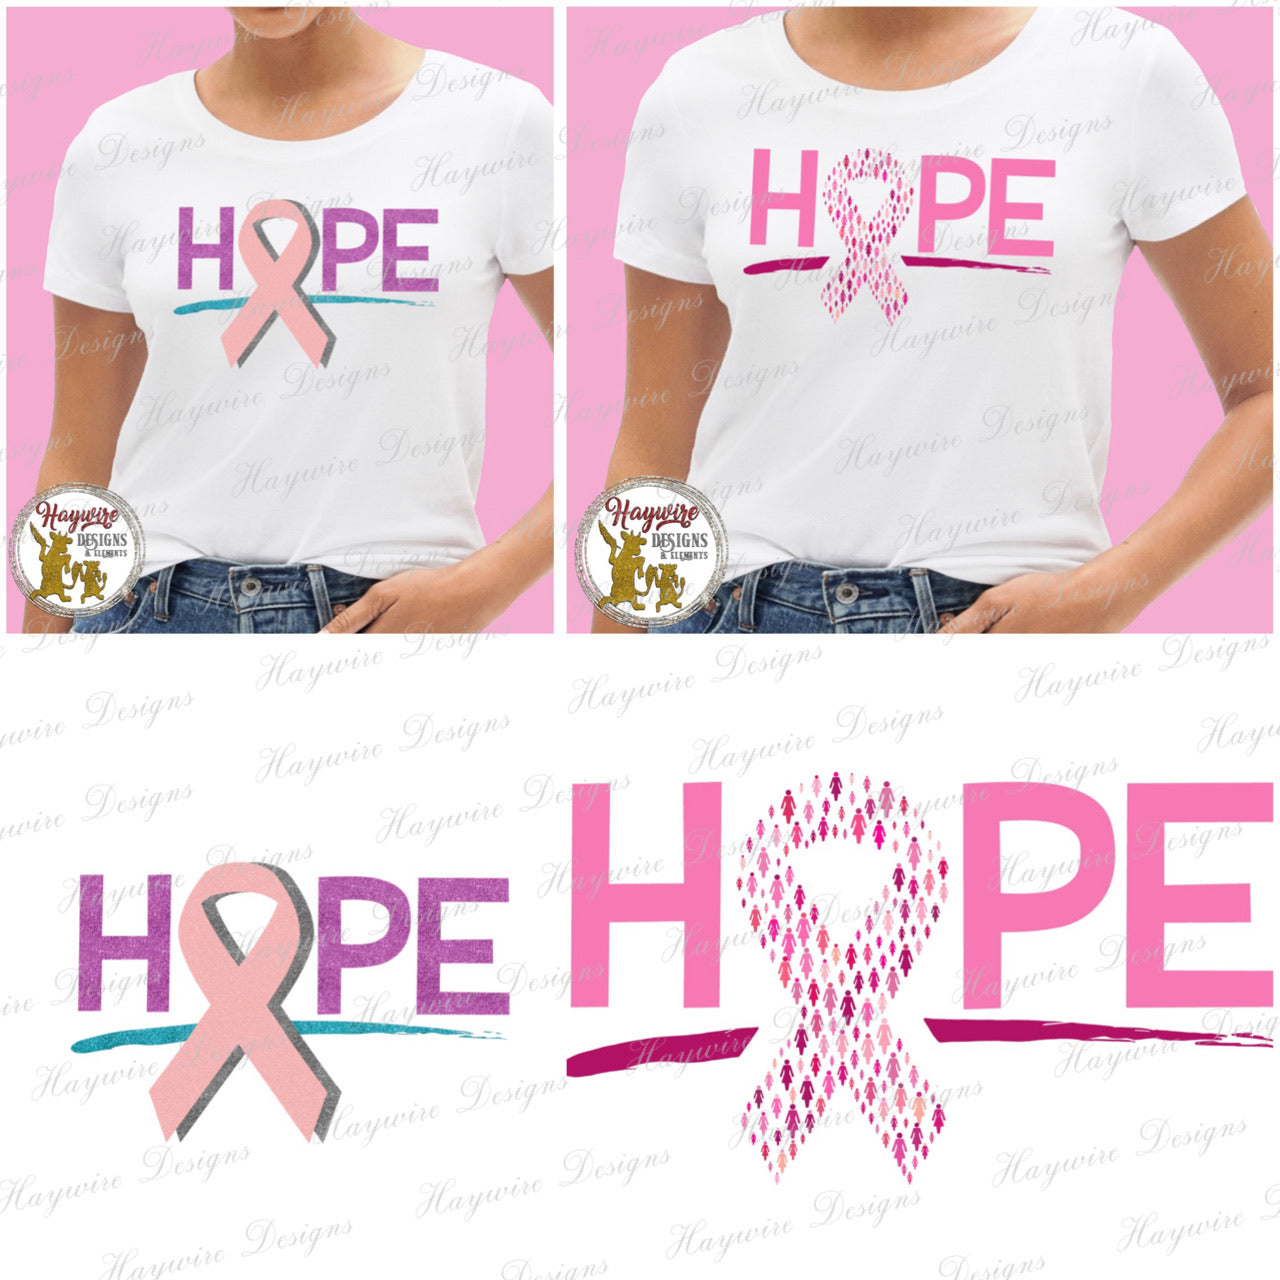 HOPE BREAST CANCER  - 2 Versions